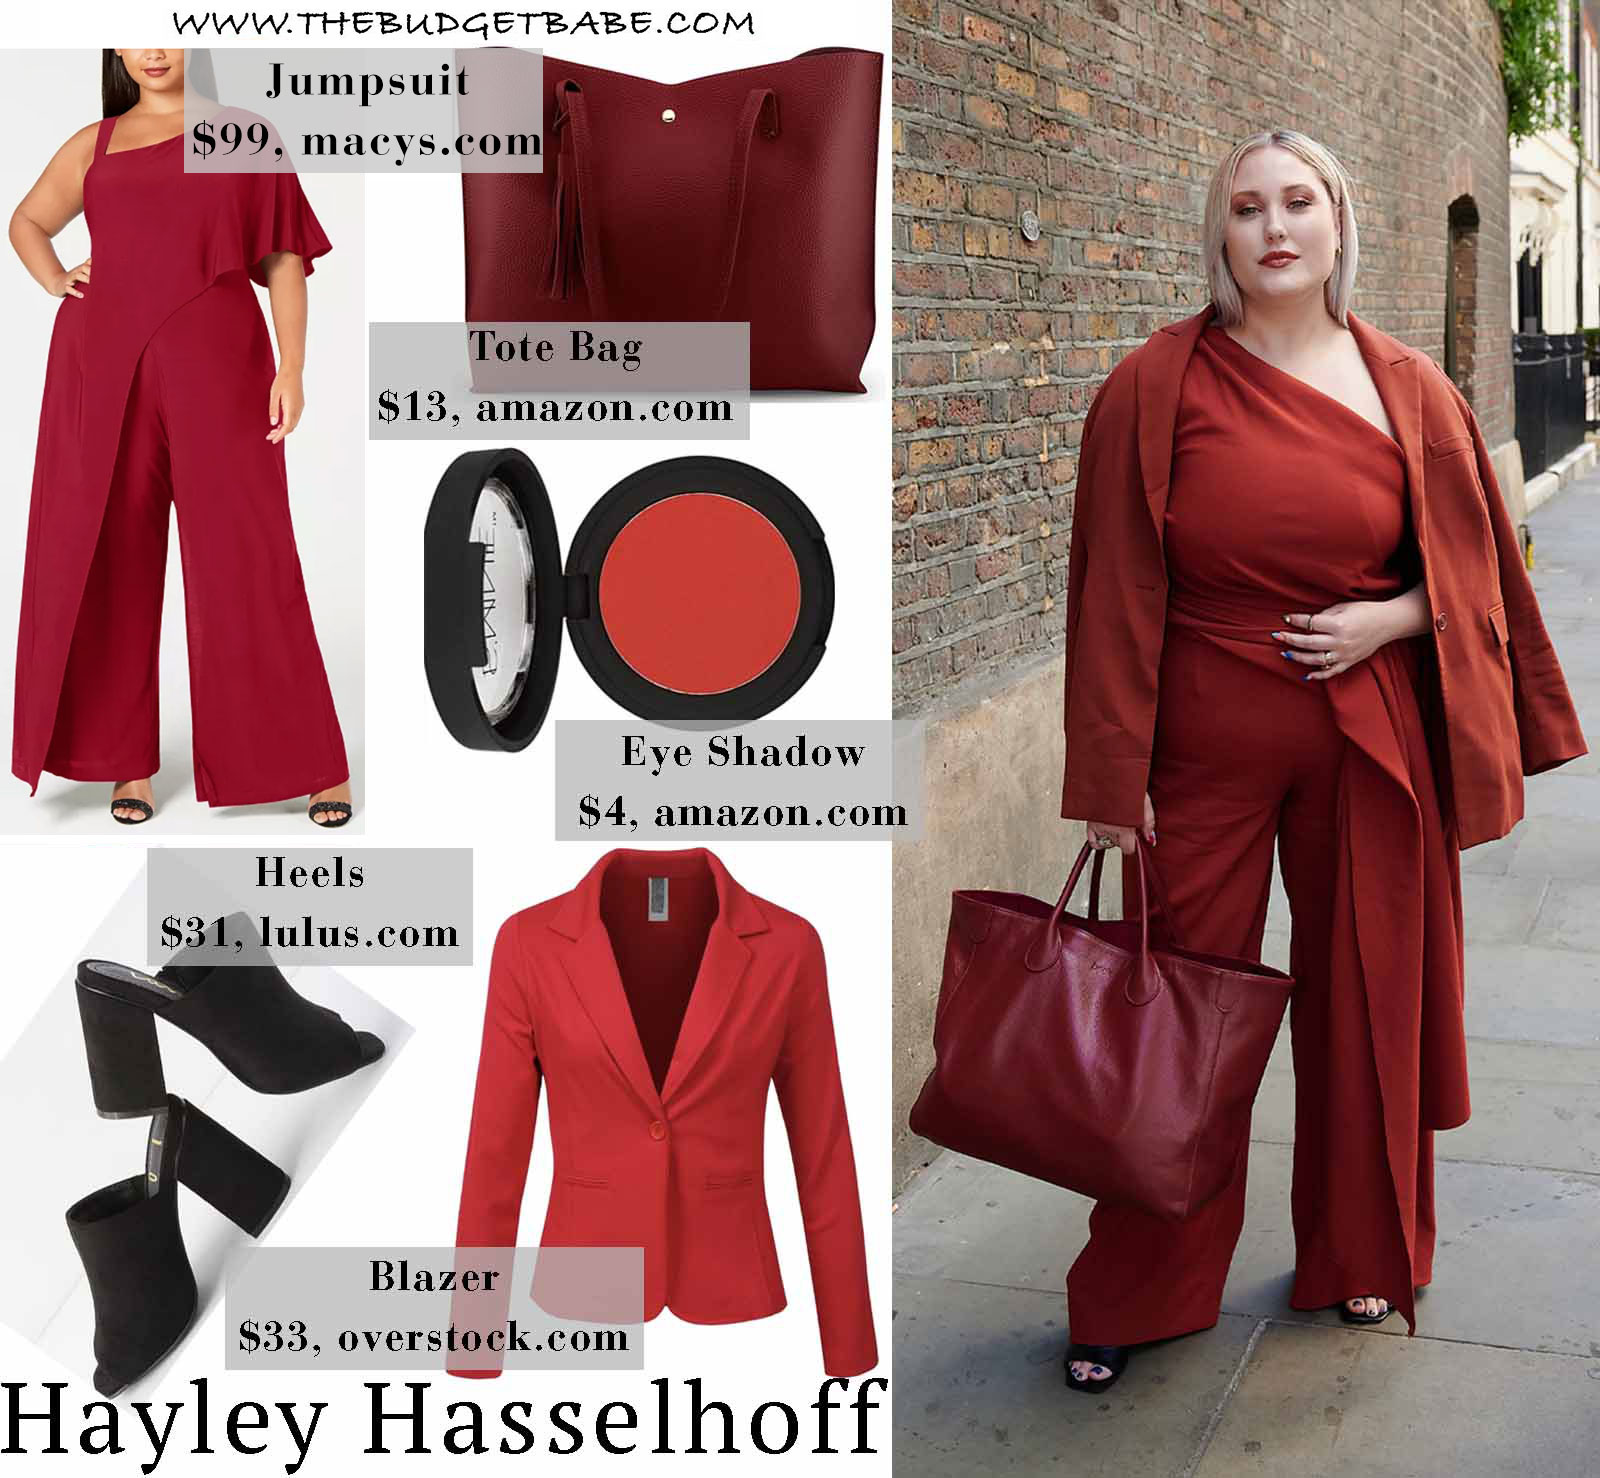 Get the Look: Hayley Hasselhoff's One Shoulder Draped Jumpsuit and Matching Blazer